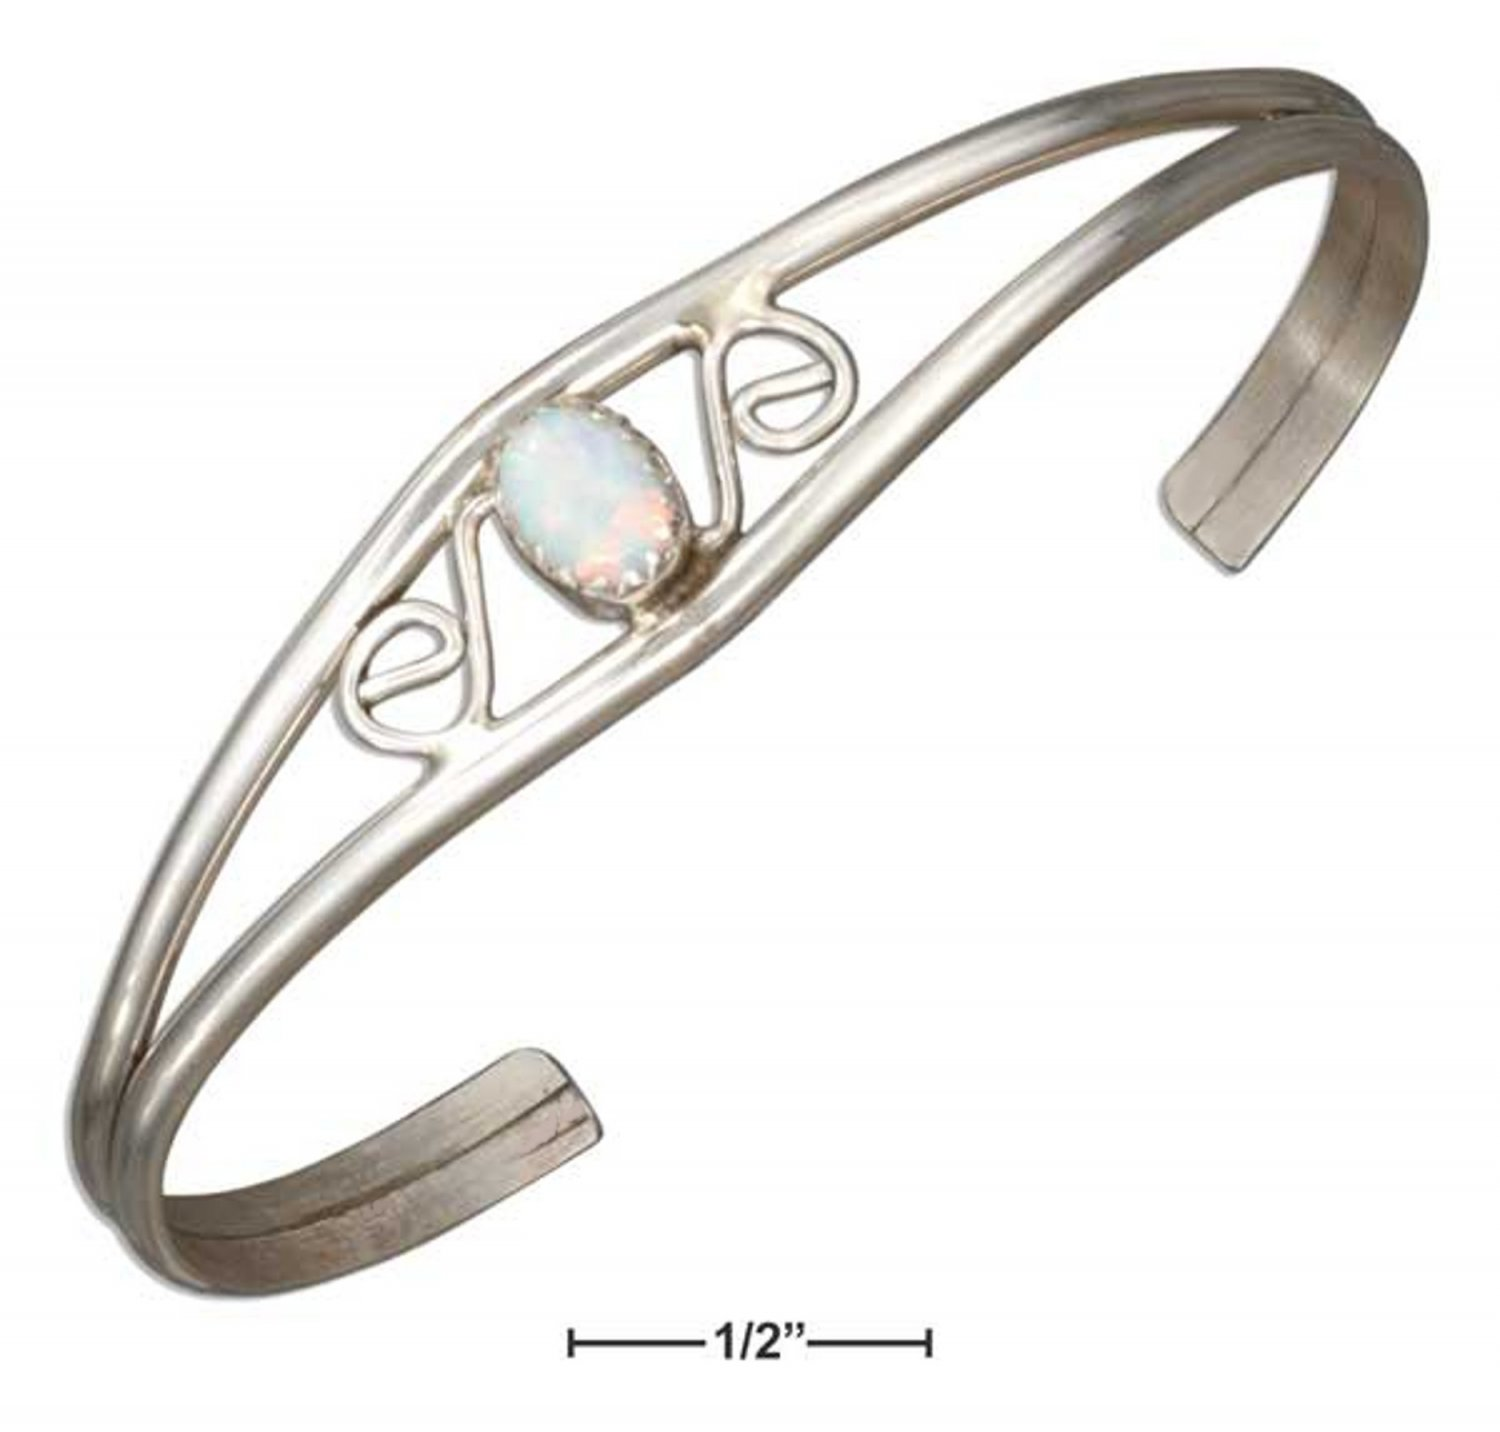 Sterling silver scrolled cuff bracelet with lab created white opals